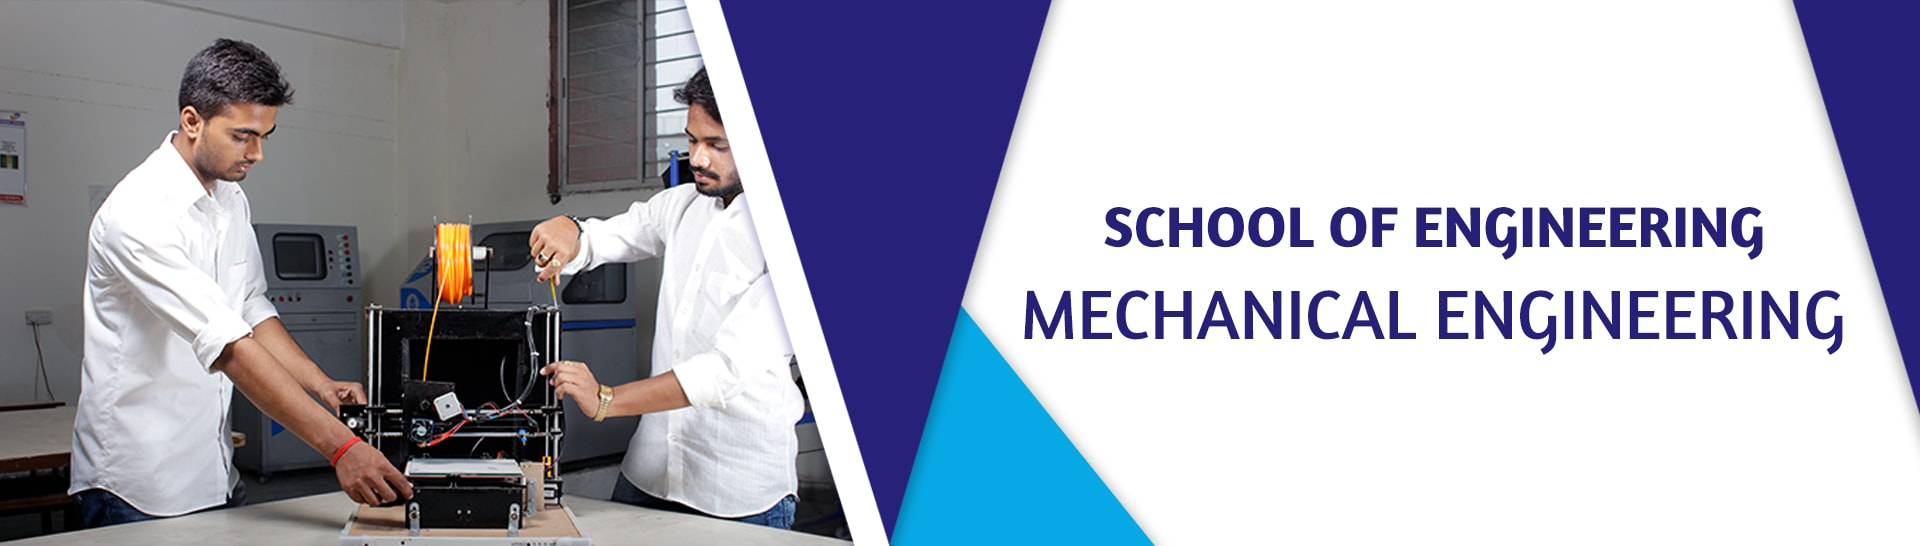 school of engg mechanical engineering